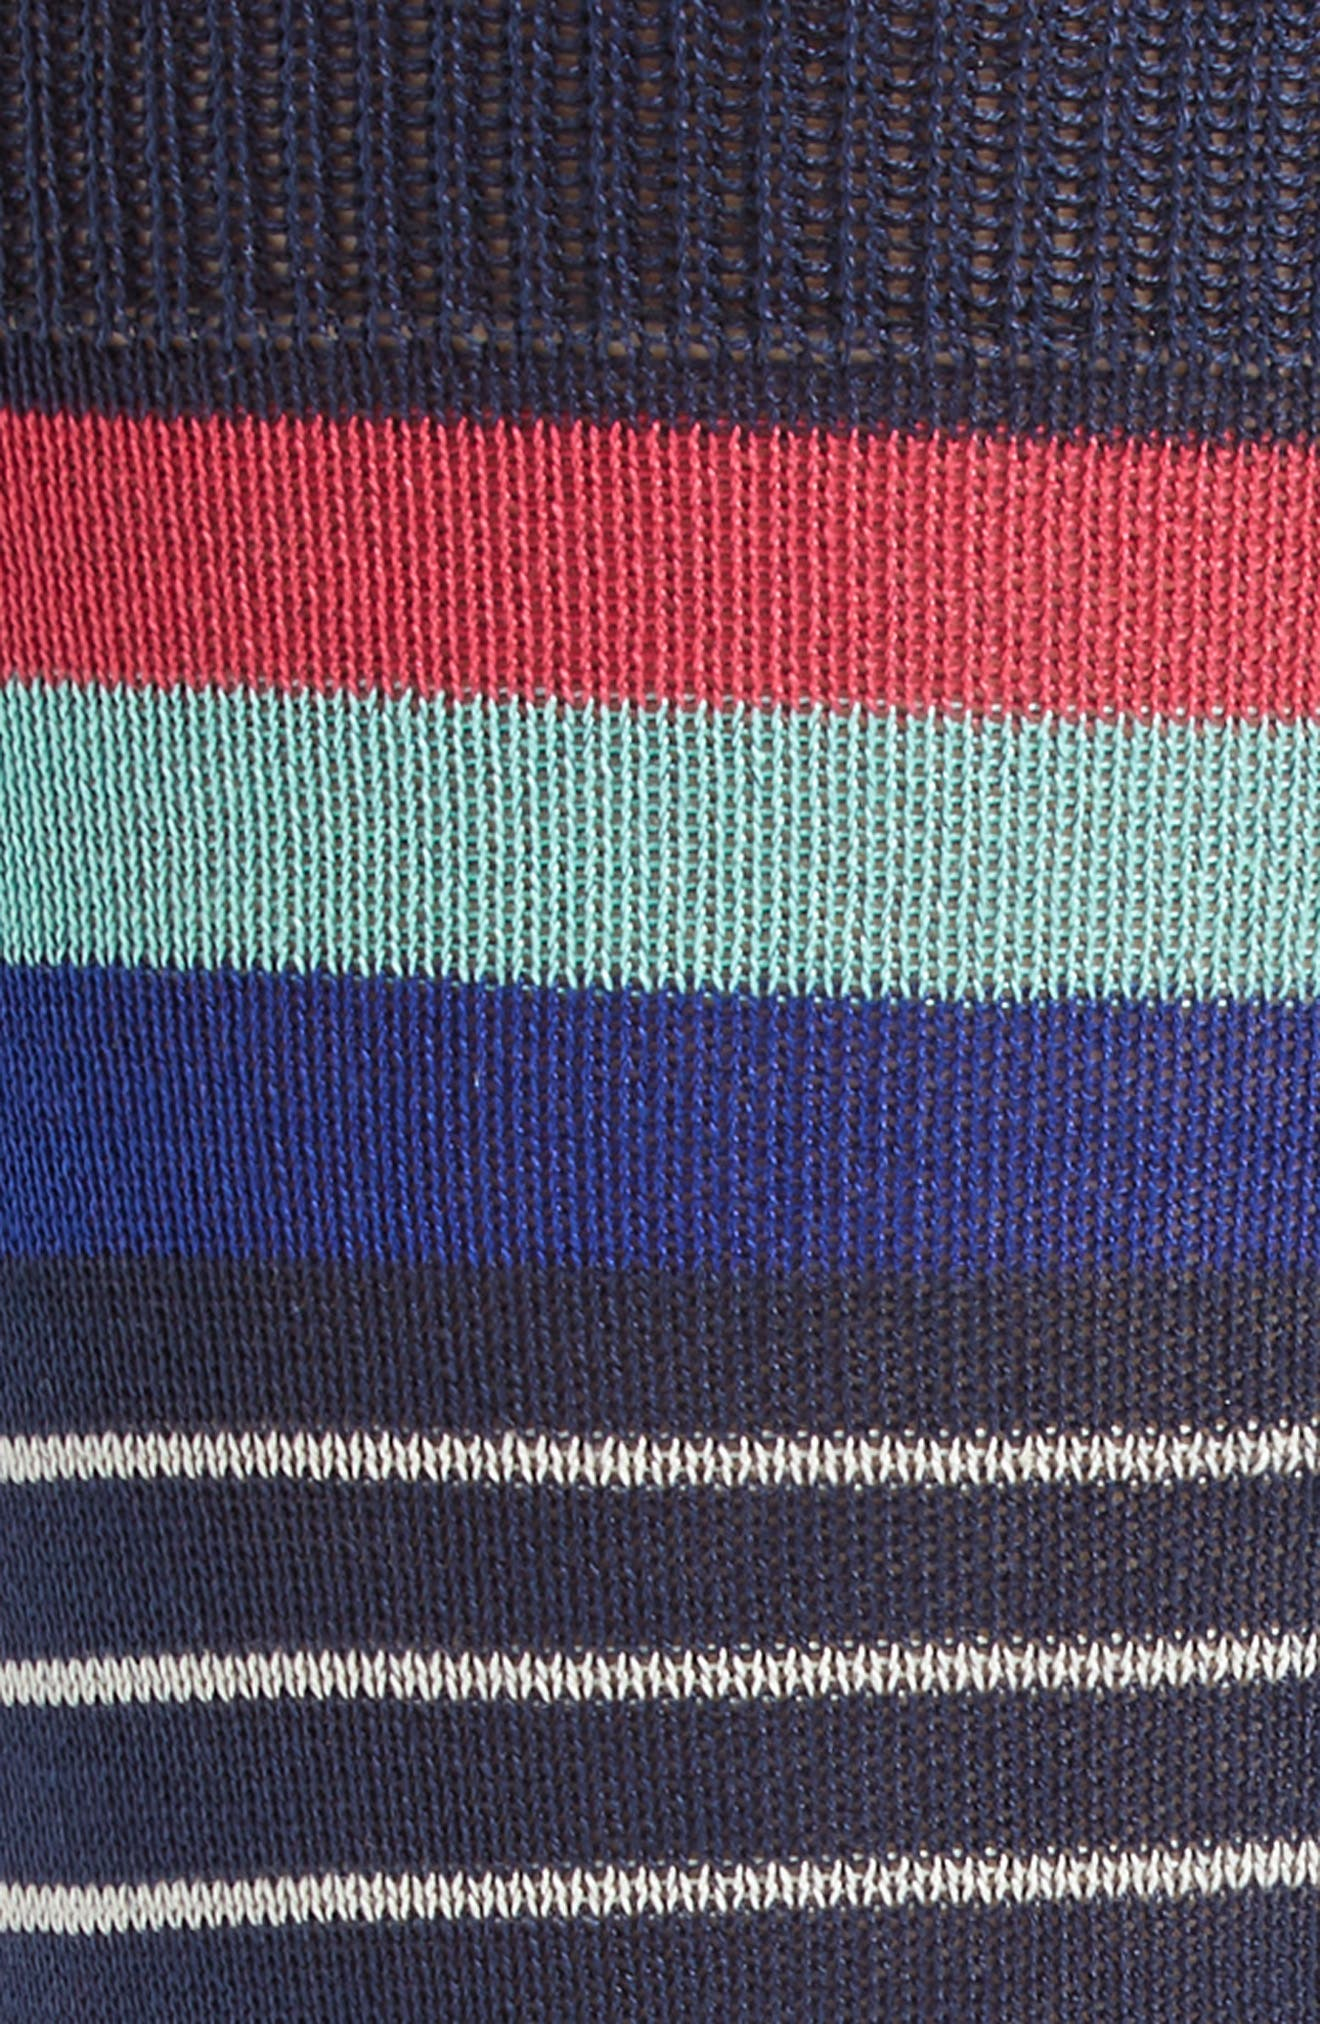 Alternate Image 2  - Paul Smith Kel Stripe Crew Socks